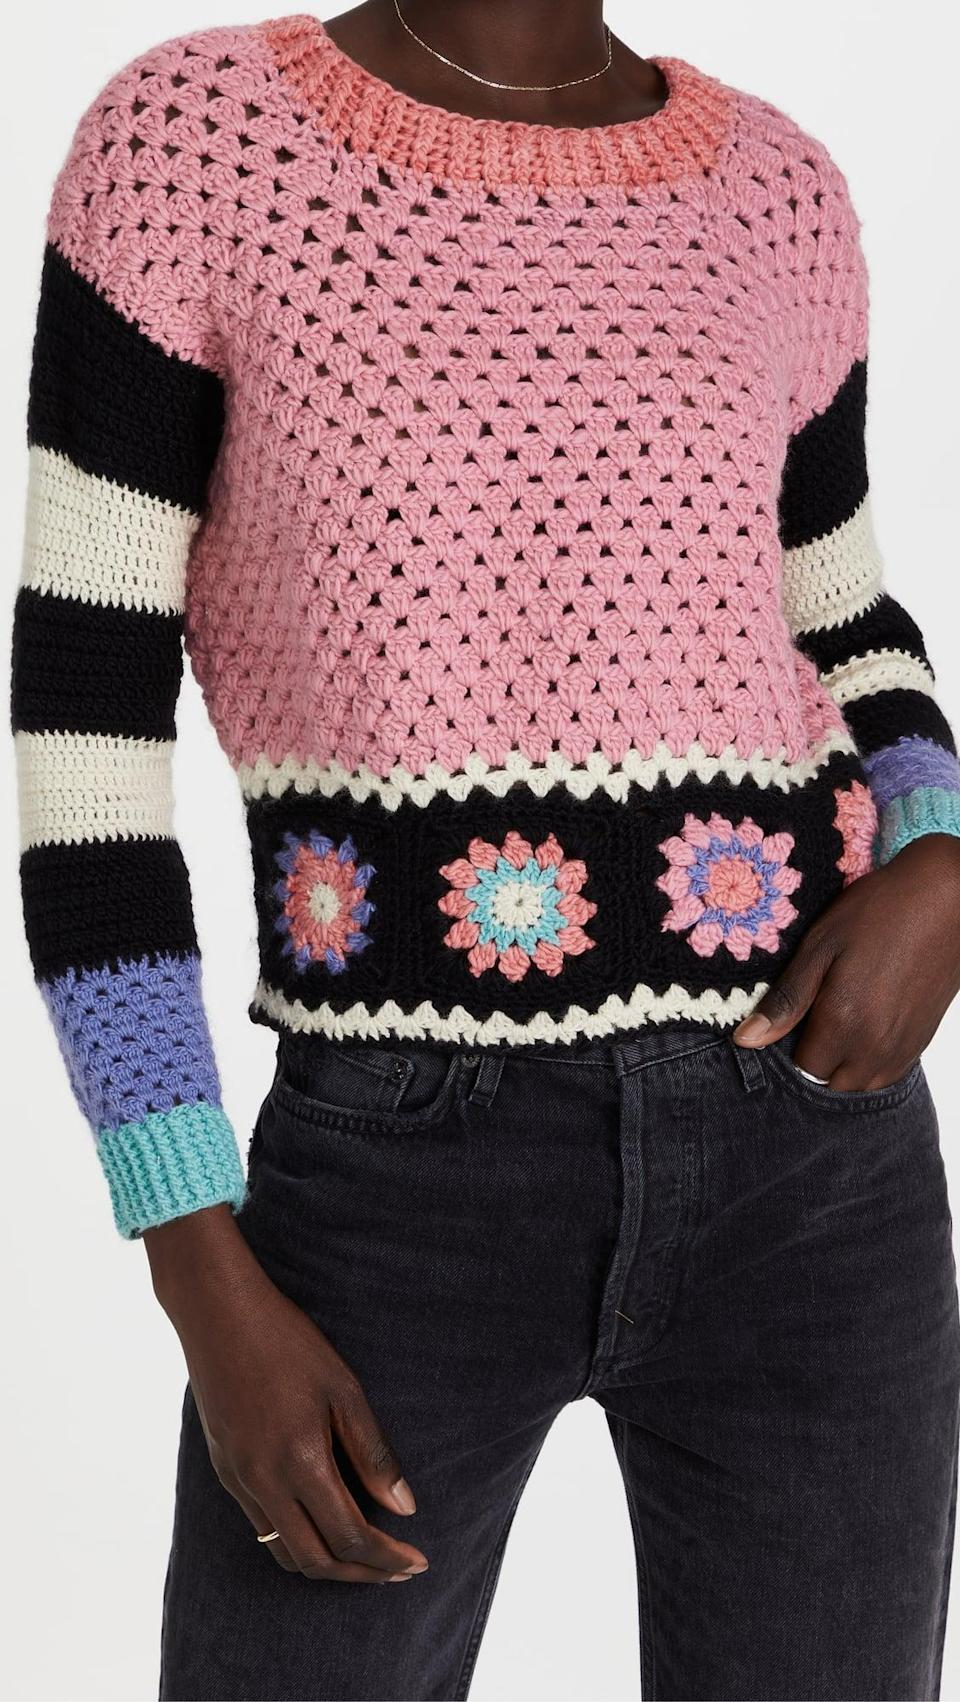 <p>This <span>Tach Clothing Ester Sweater</span> ($306) taps into the embellished crochet trend, so it'll be sure to get you noticed. We love the flower insertions at the bottom and the color-block print on the sleeves.</p>